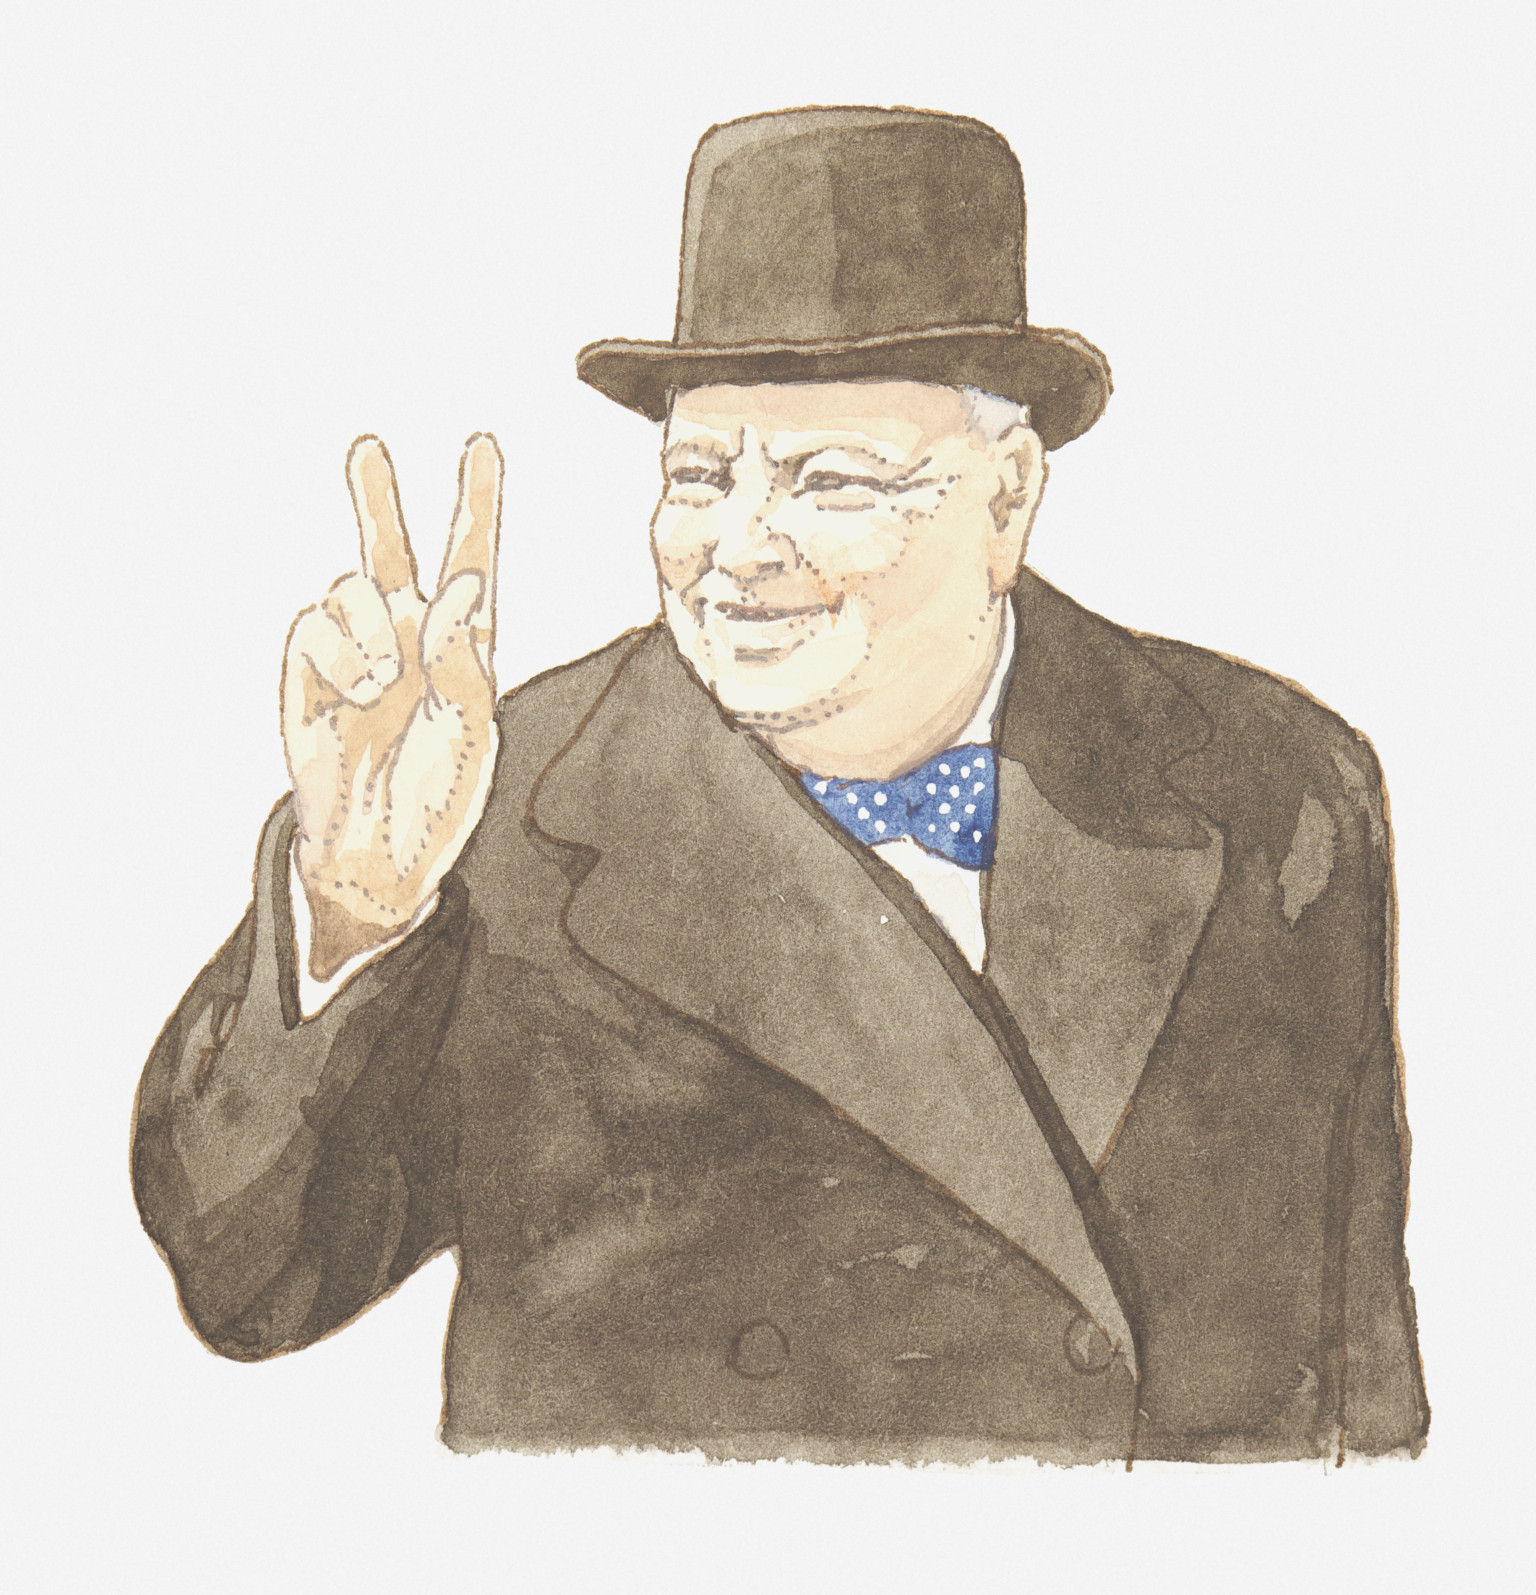 winston churchill and the importance of a cosmic outlook the winston churchill and the importance of a cosmic outlook the huffington post